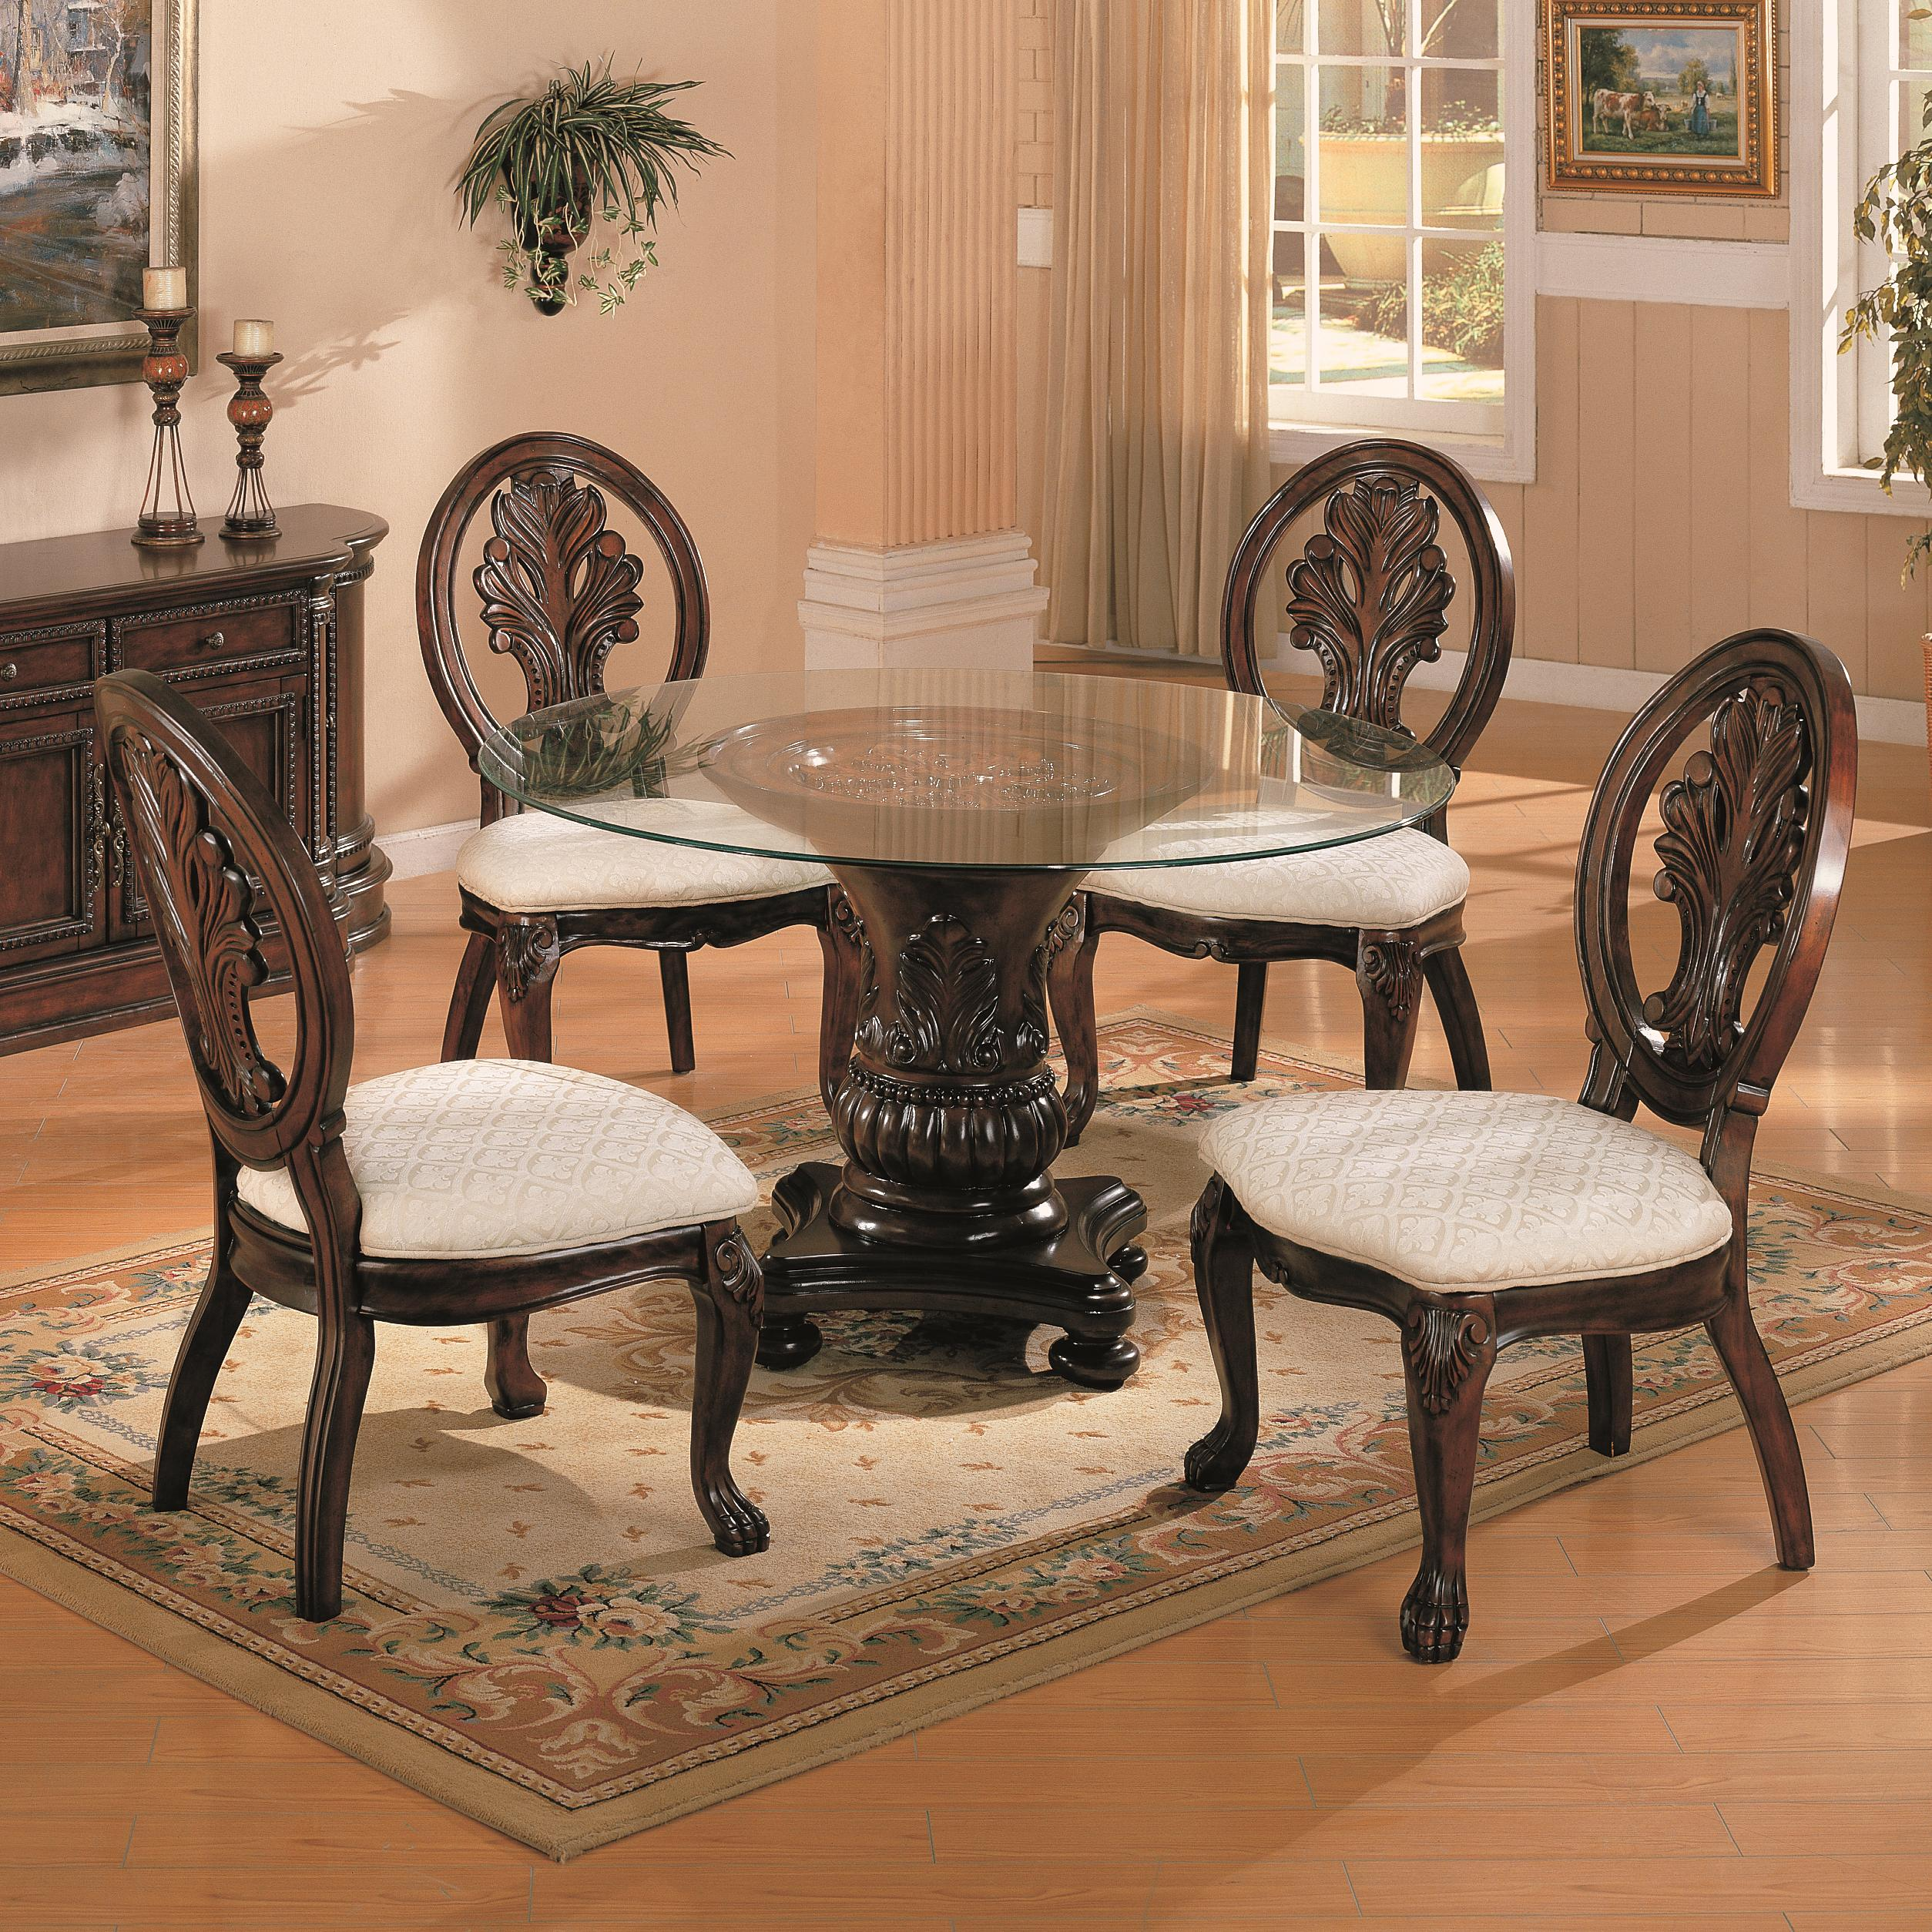 Coaster Tabitha 5 Piece Dining Set - Item Number: 101030+4x032